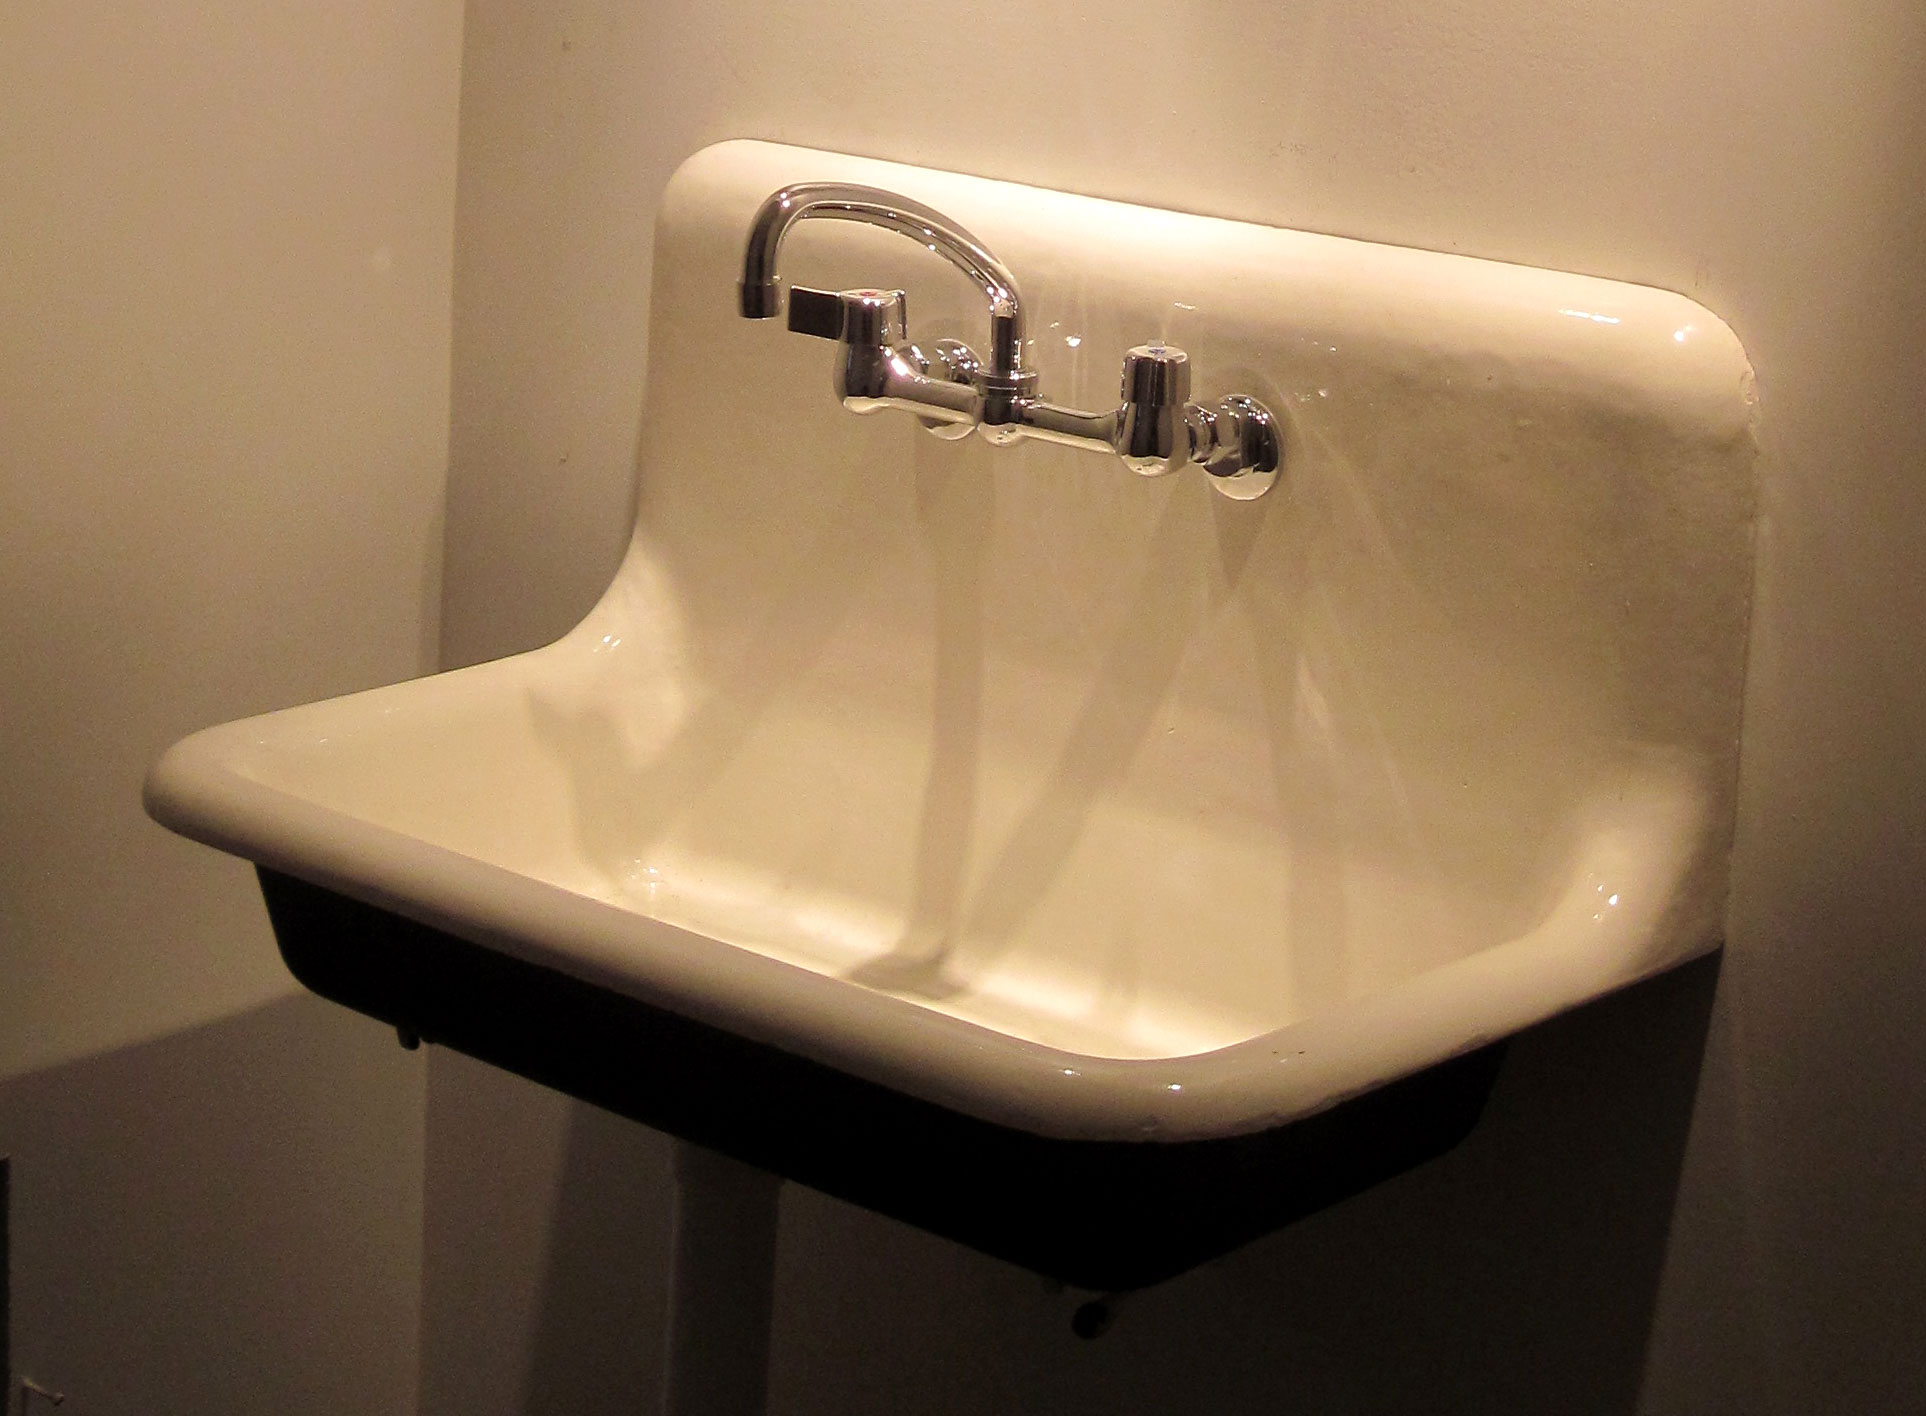 cast iron sink as a work of art refinish kitchen sink The representative